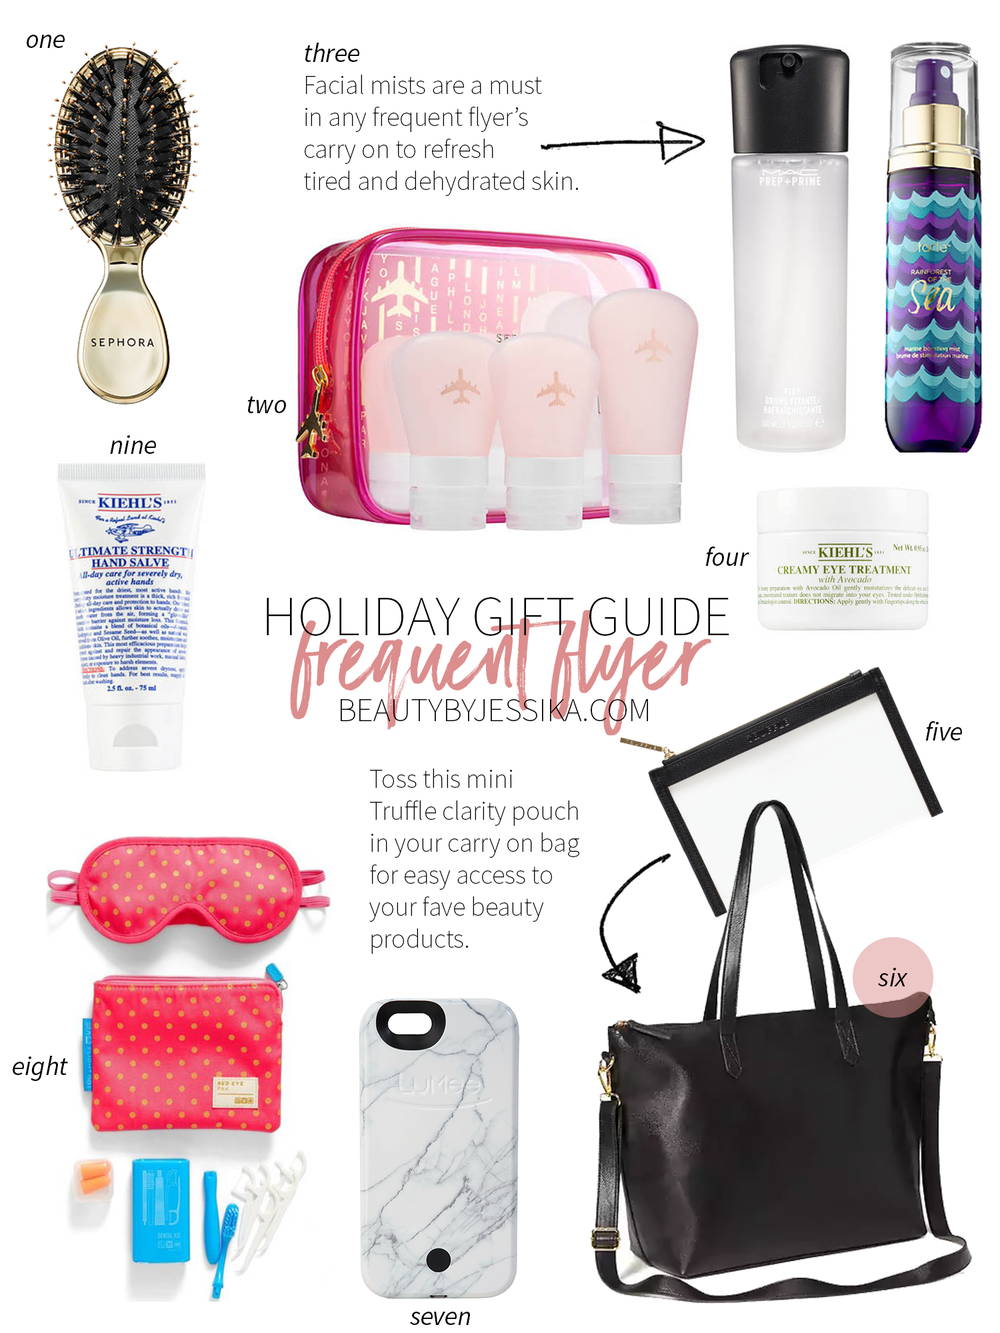 A holiday gift guide for all of our frequent flyer friends! Get the list on beautybyjessika.com.